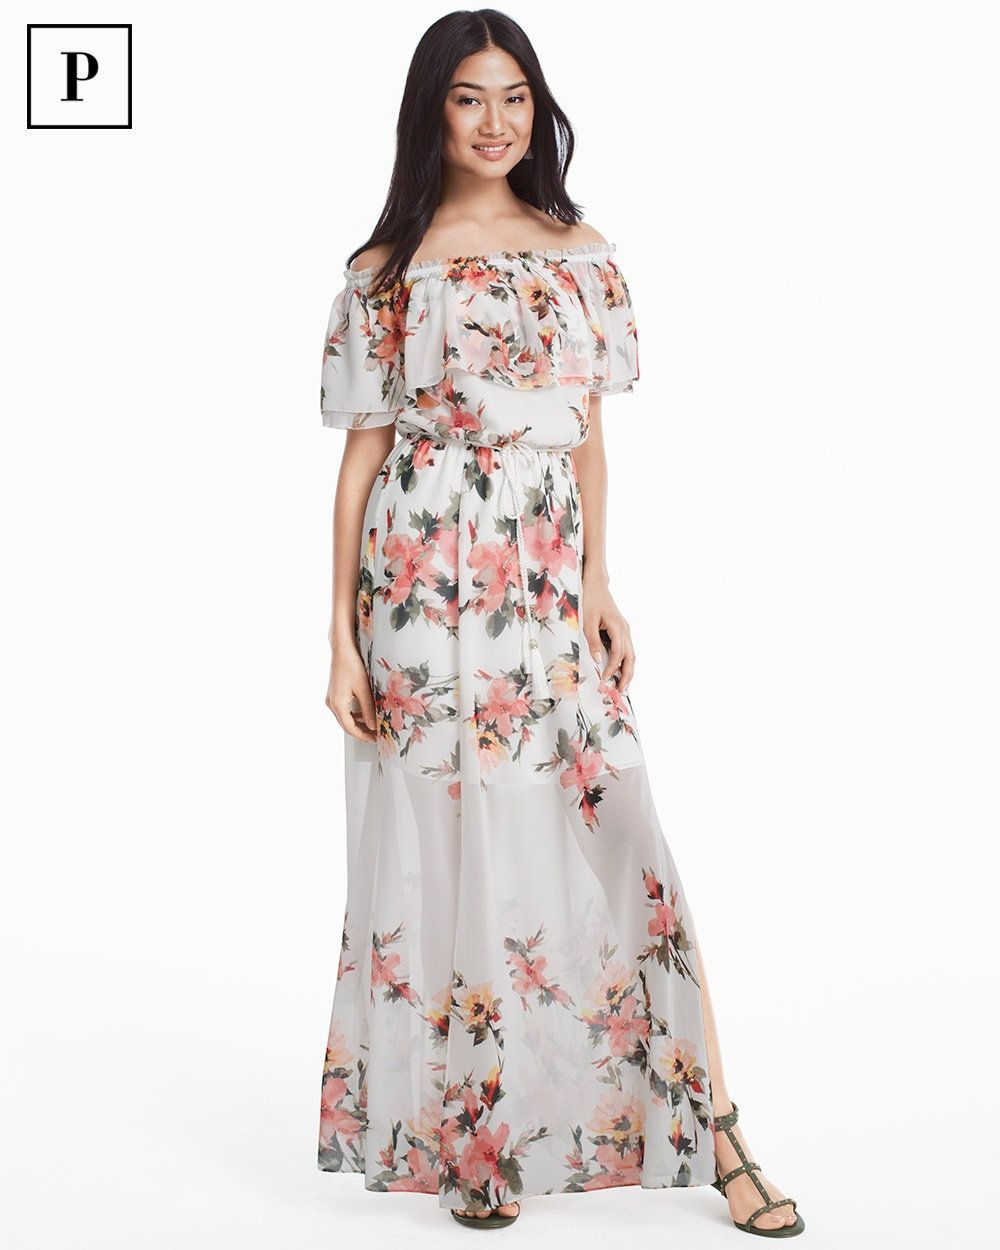 Long story short maxi dresses are making a comeback and our free